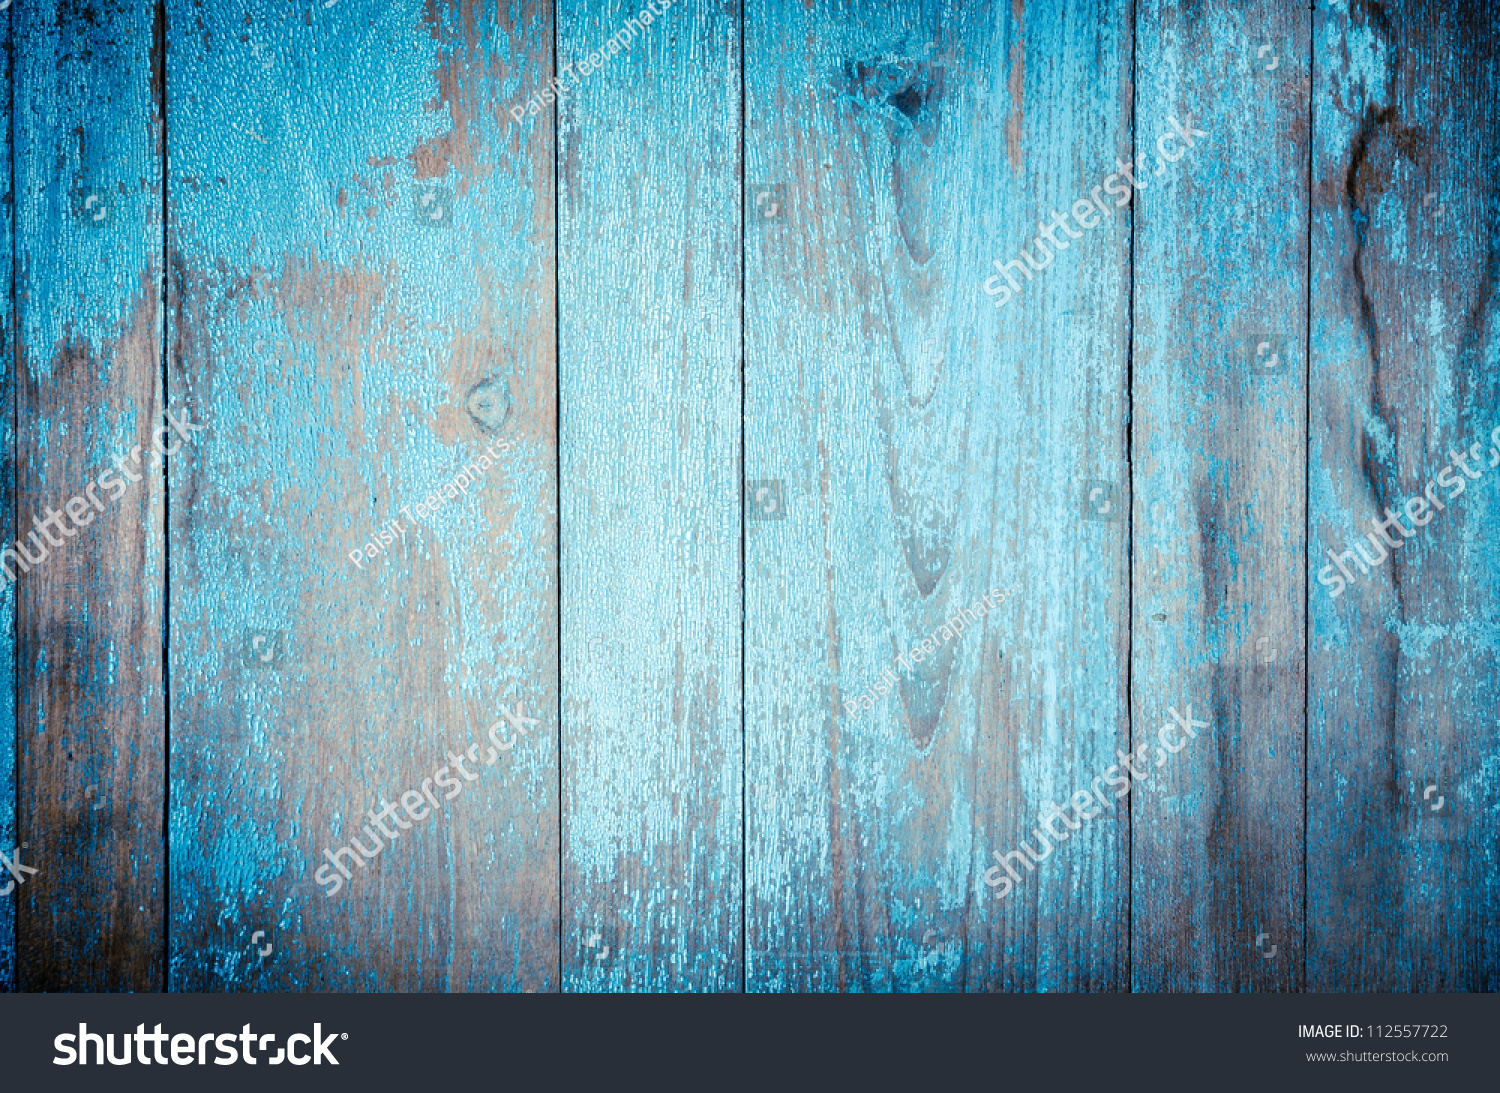 Old Wood Texture Web Background Stock Photo 112557722 - Shutterstock